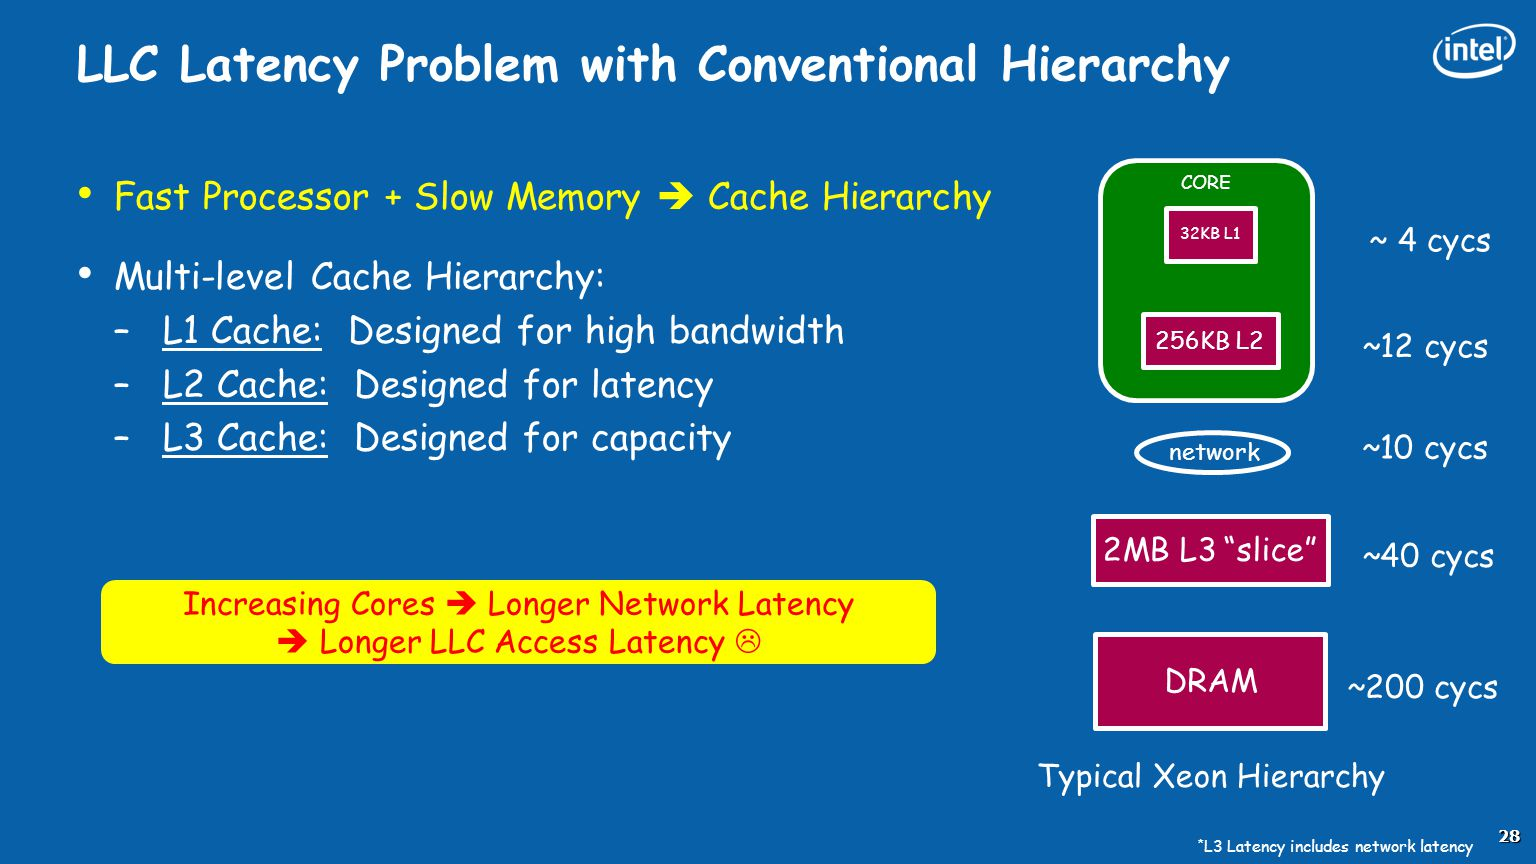 LLC Latency Problem with Conventional Hierarchy